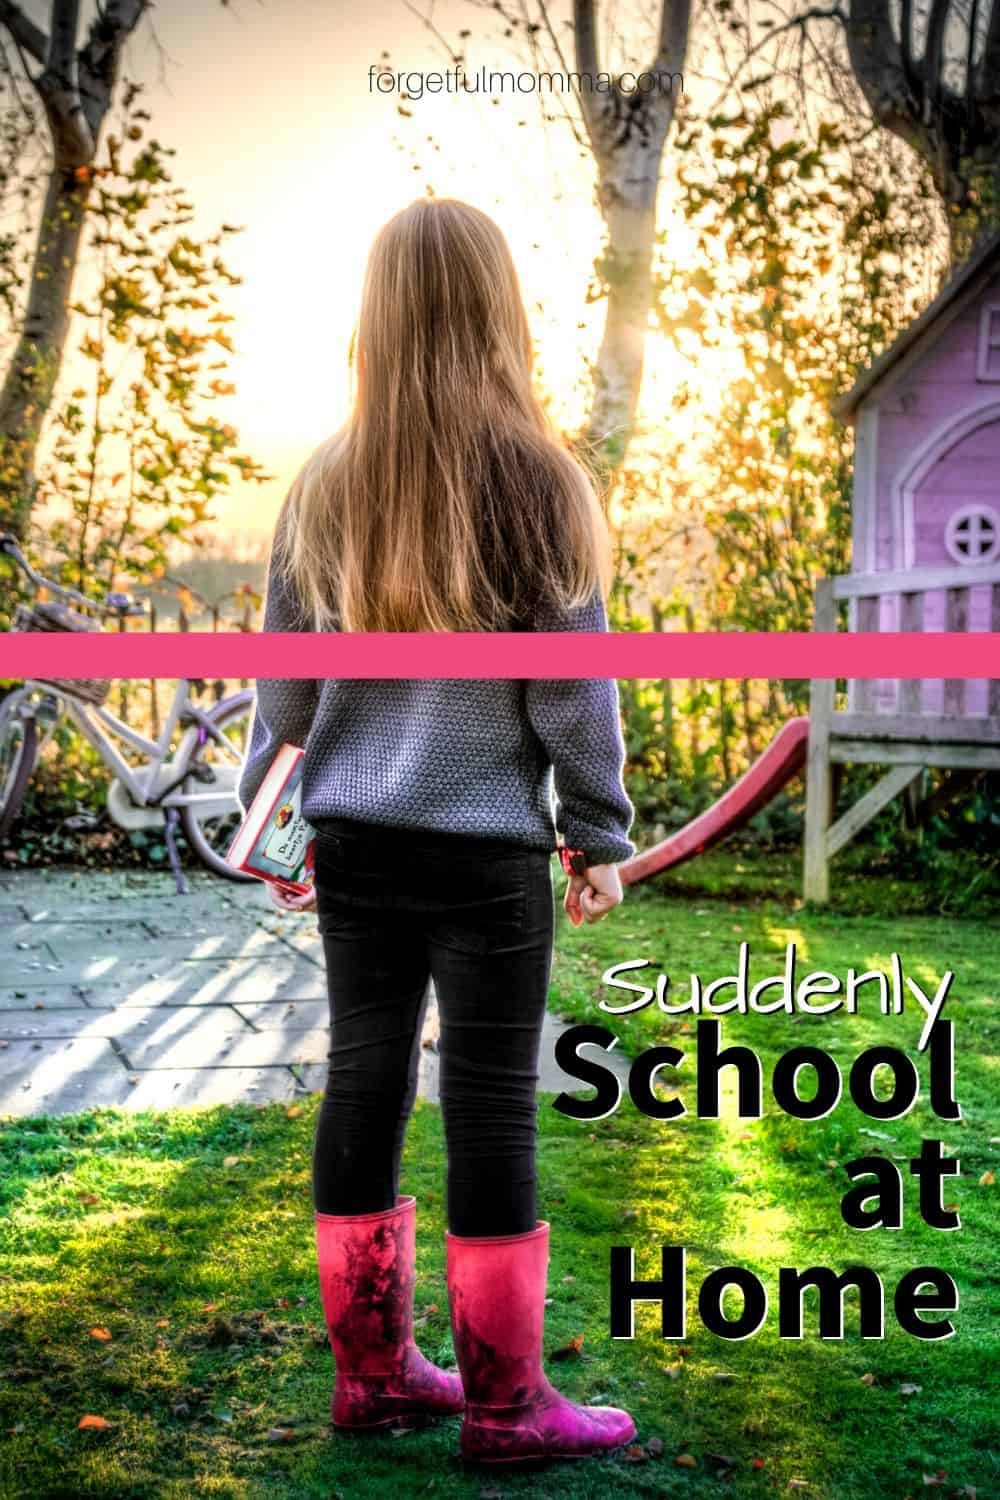 Suddenly homeschooling - school at home